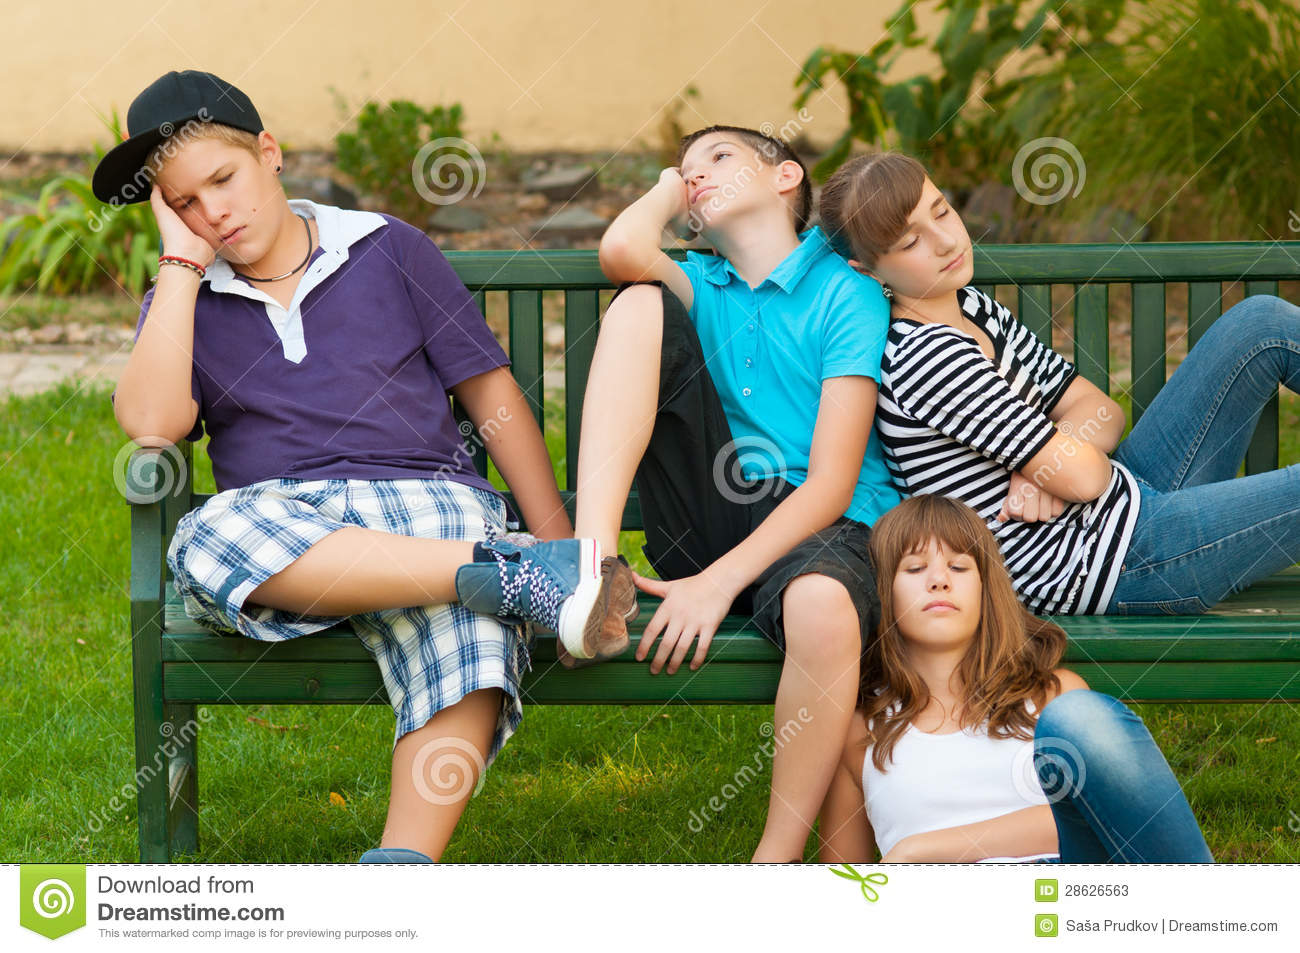 Girl And Boy Sitting Together Wallpaper Teenage Boys And Girls Resting On The Bench Stock Photos